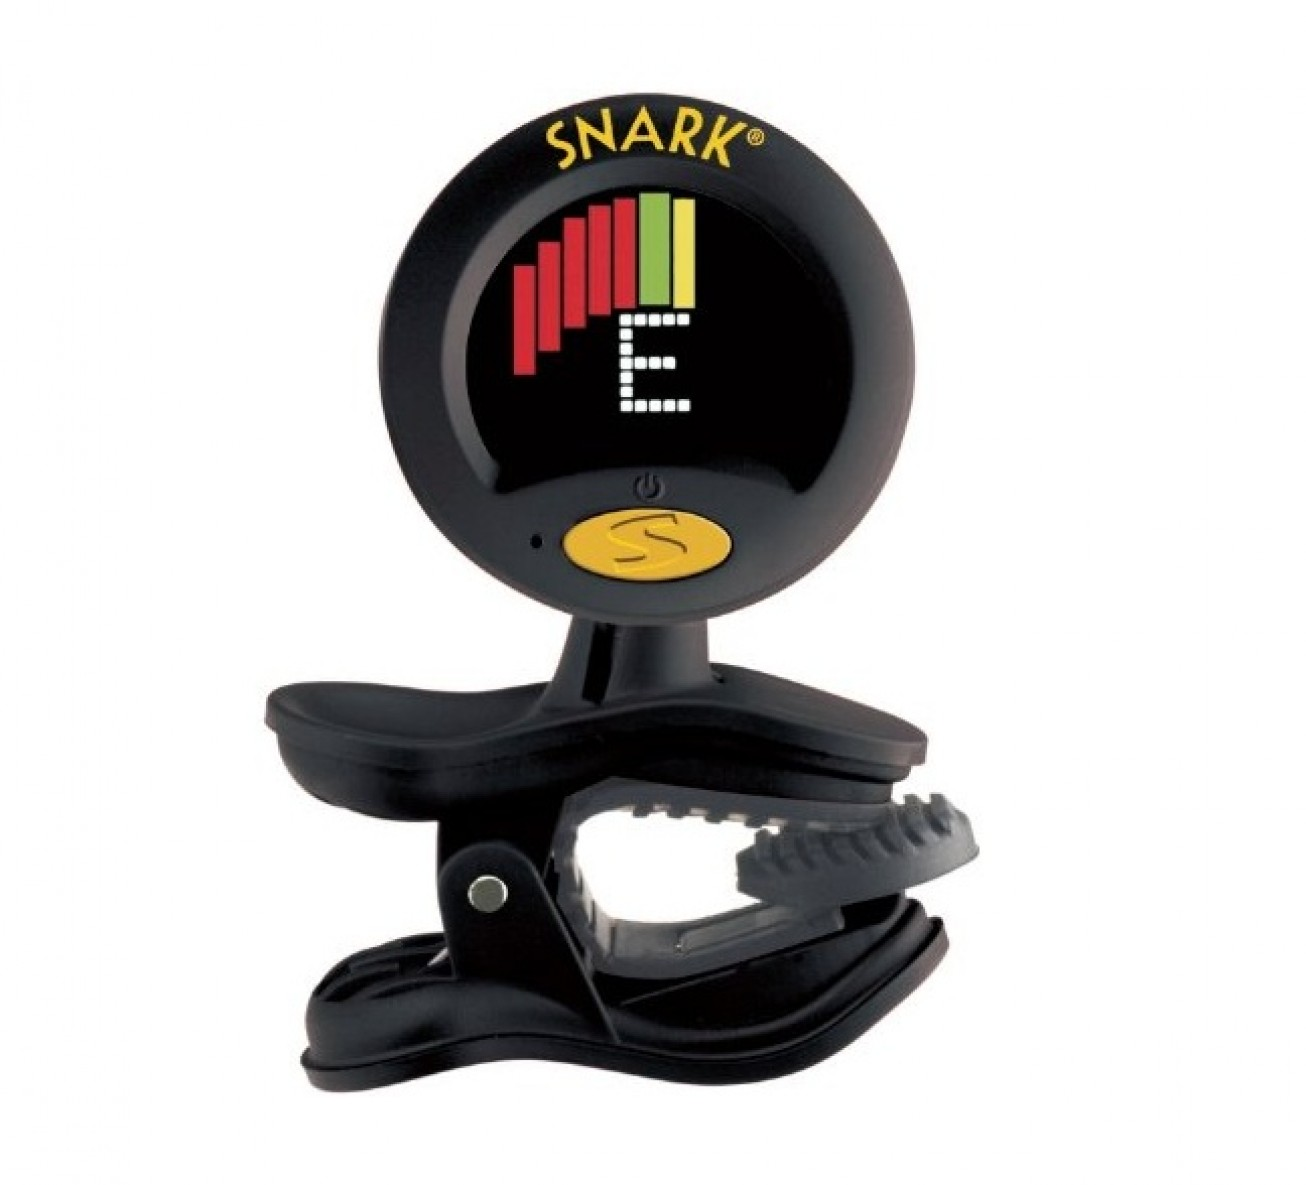 Snark SN-8 Super Tight All Instrument Tuner- Musical Instruments